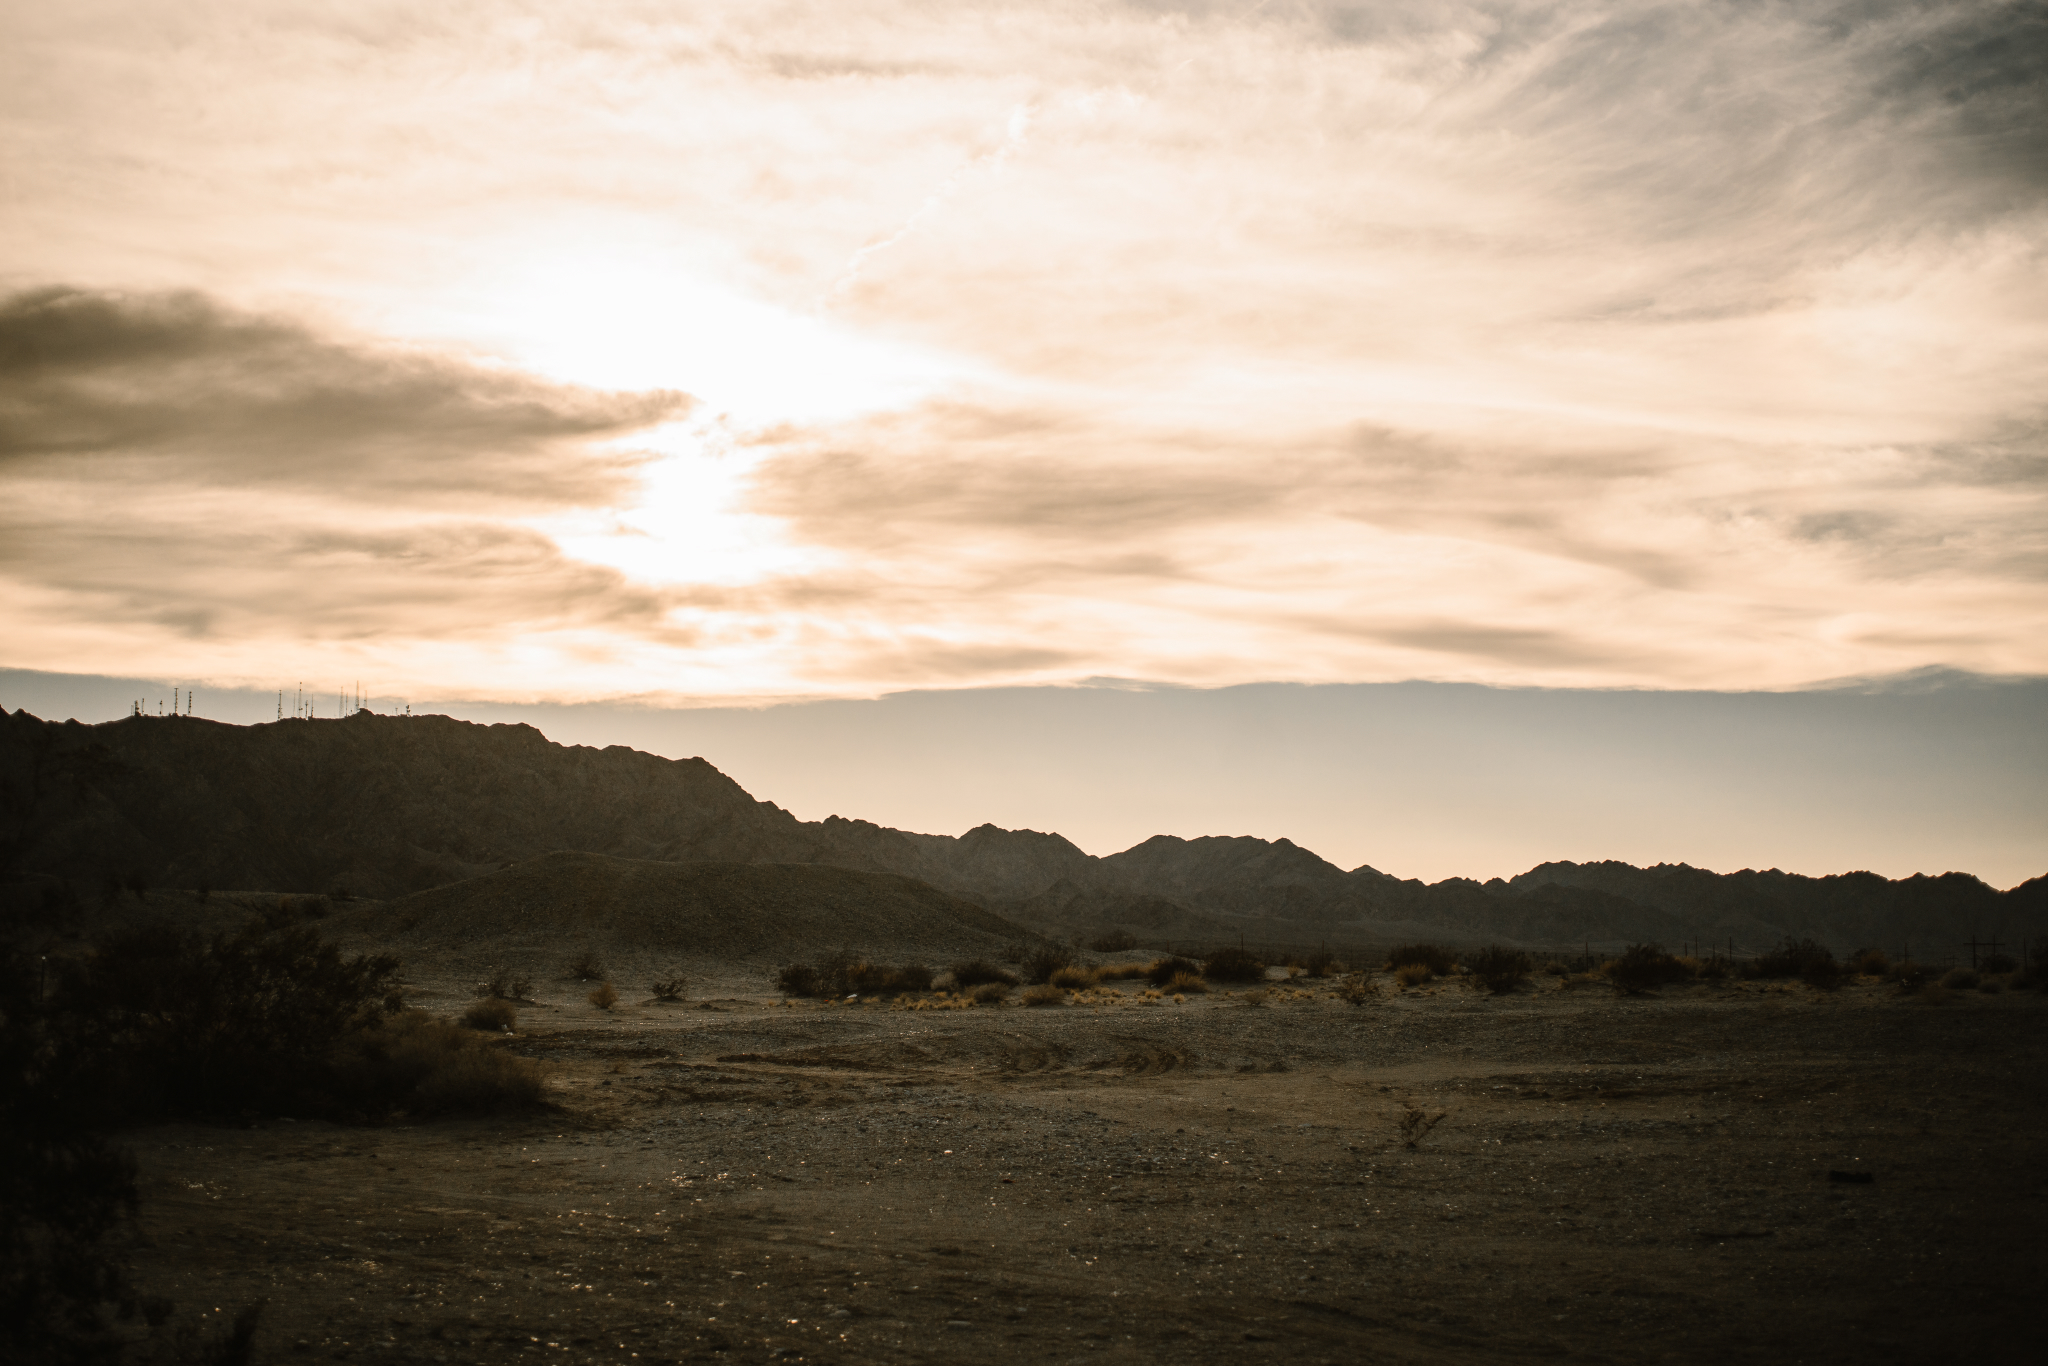 san diego wedding   photographer | picturesque view of dry terrain with sunset about to come